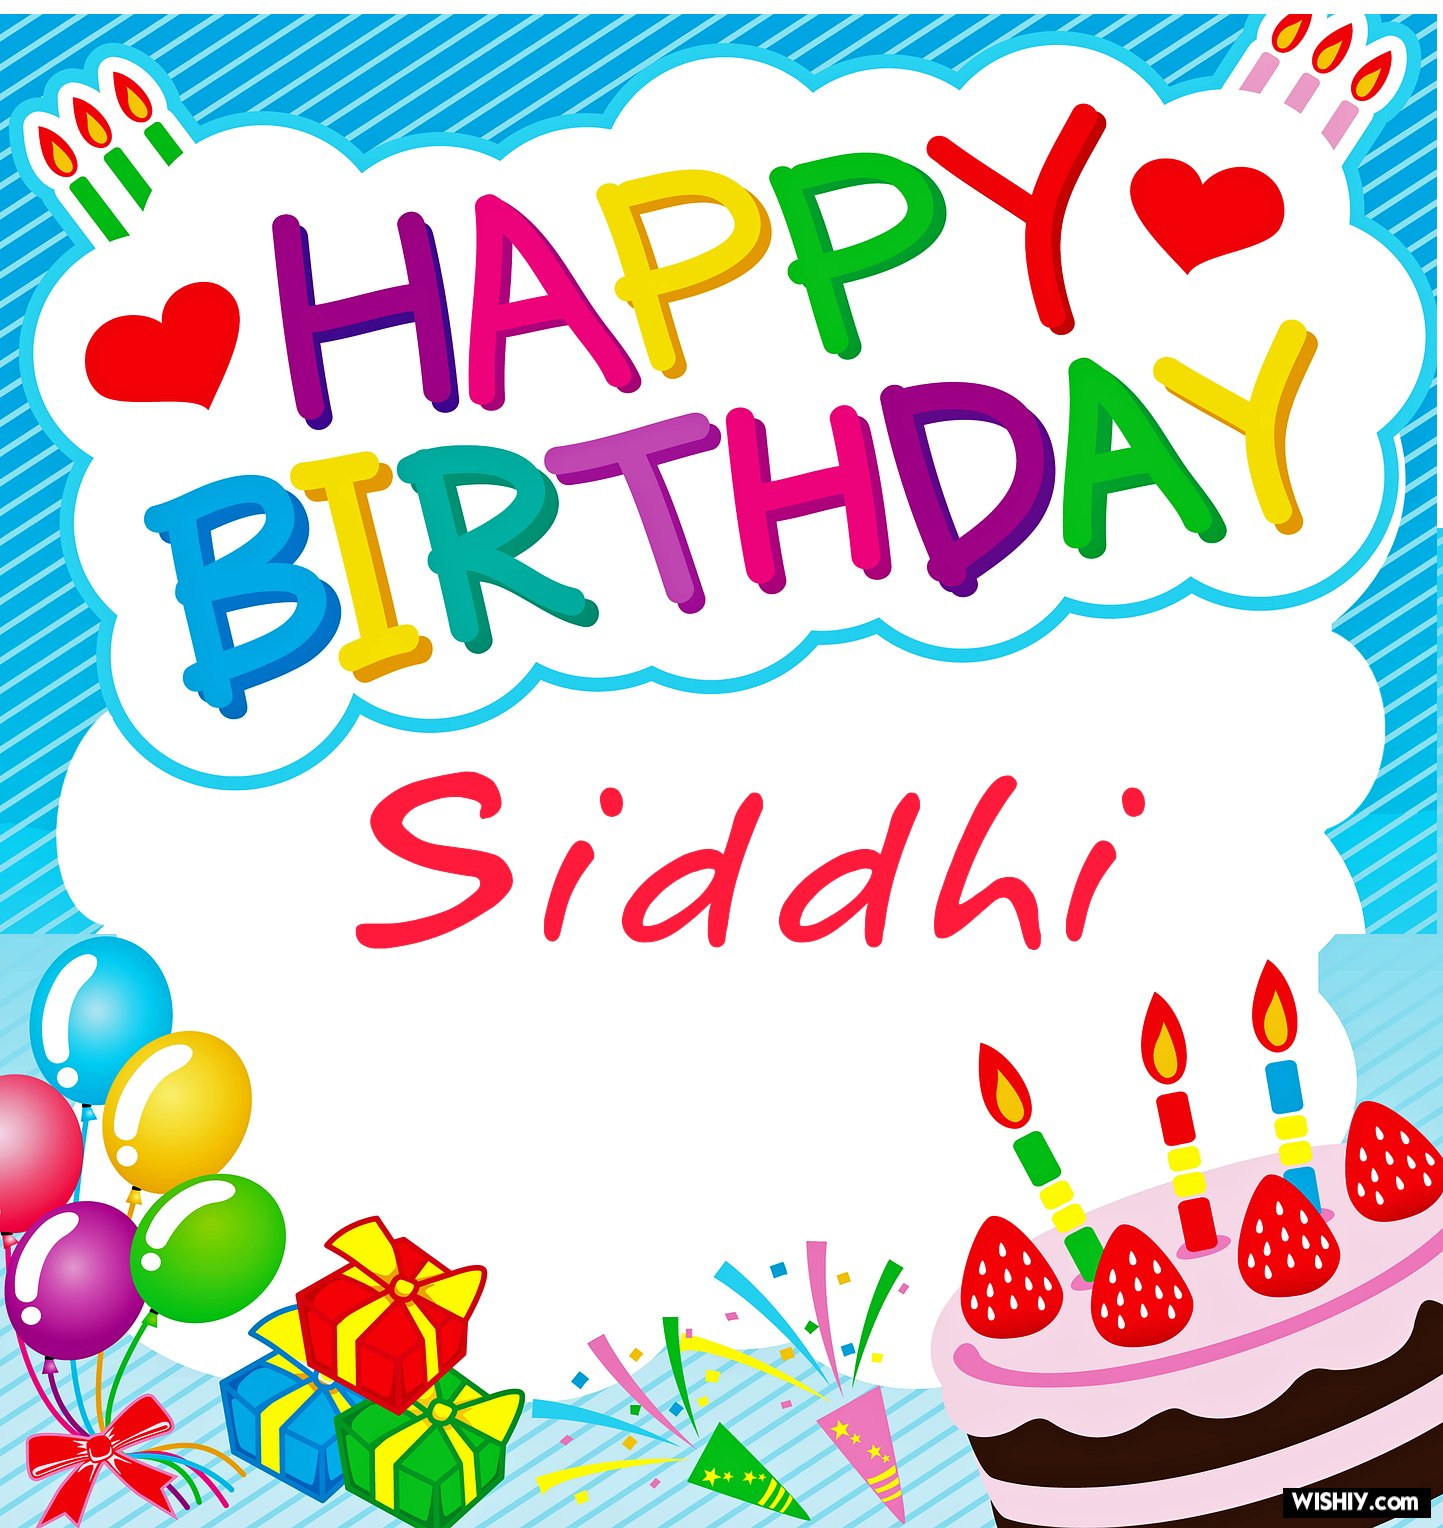 50 Best Birthday Images For Siddhi Instant Download 2021 Happy dhanteras 2019 siddhi arts pvt. https wishiy com terms